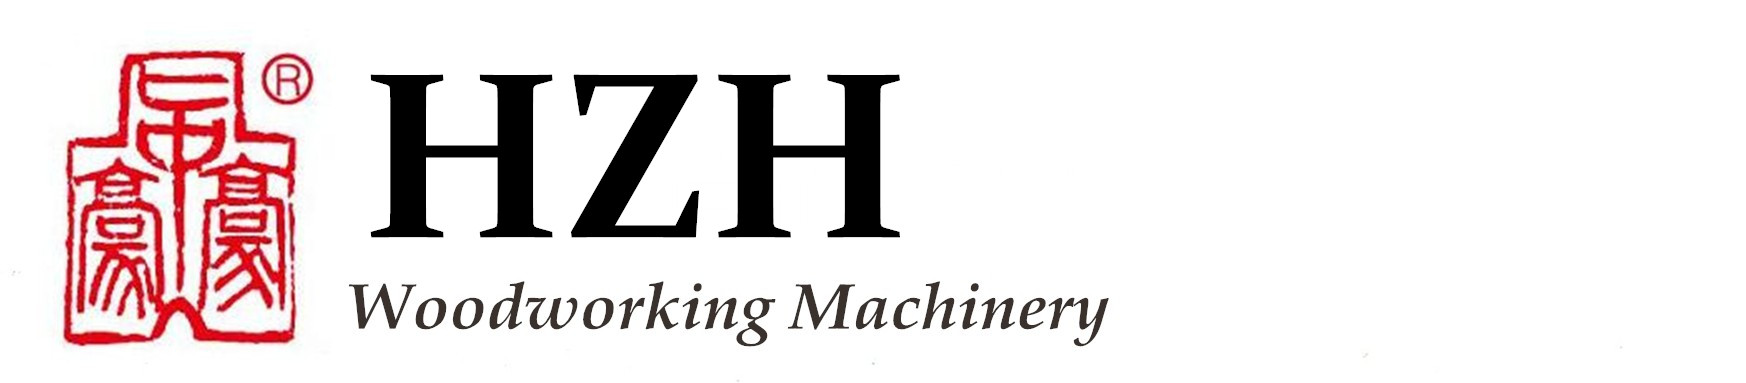 HZH Woodworking Machinery